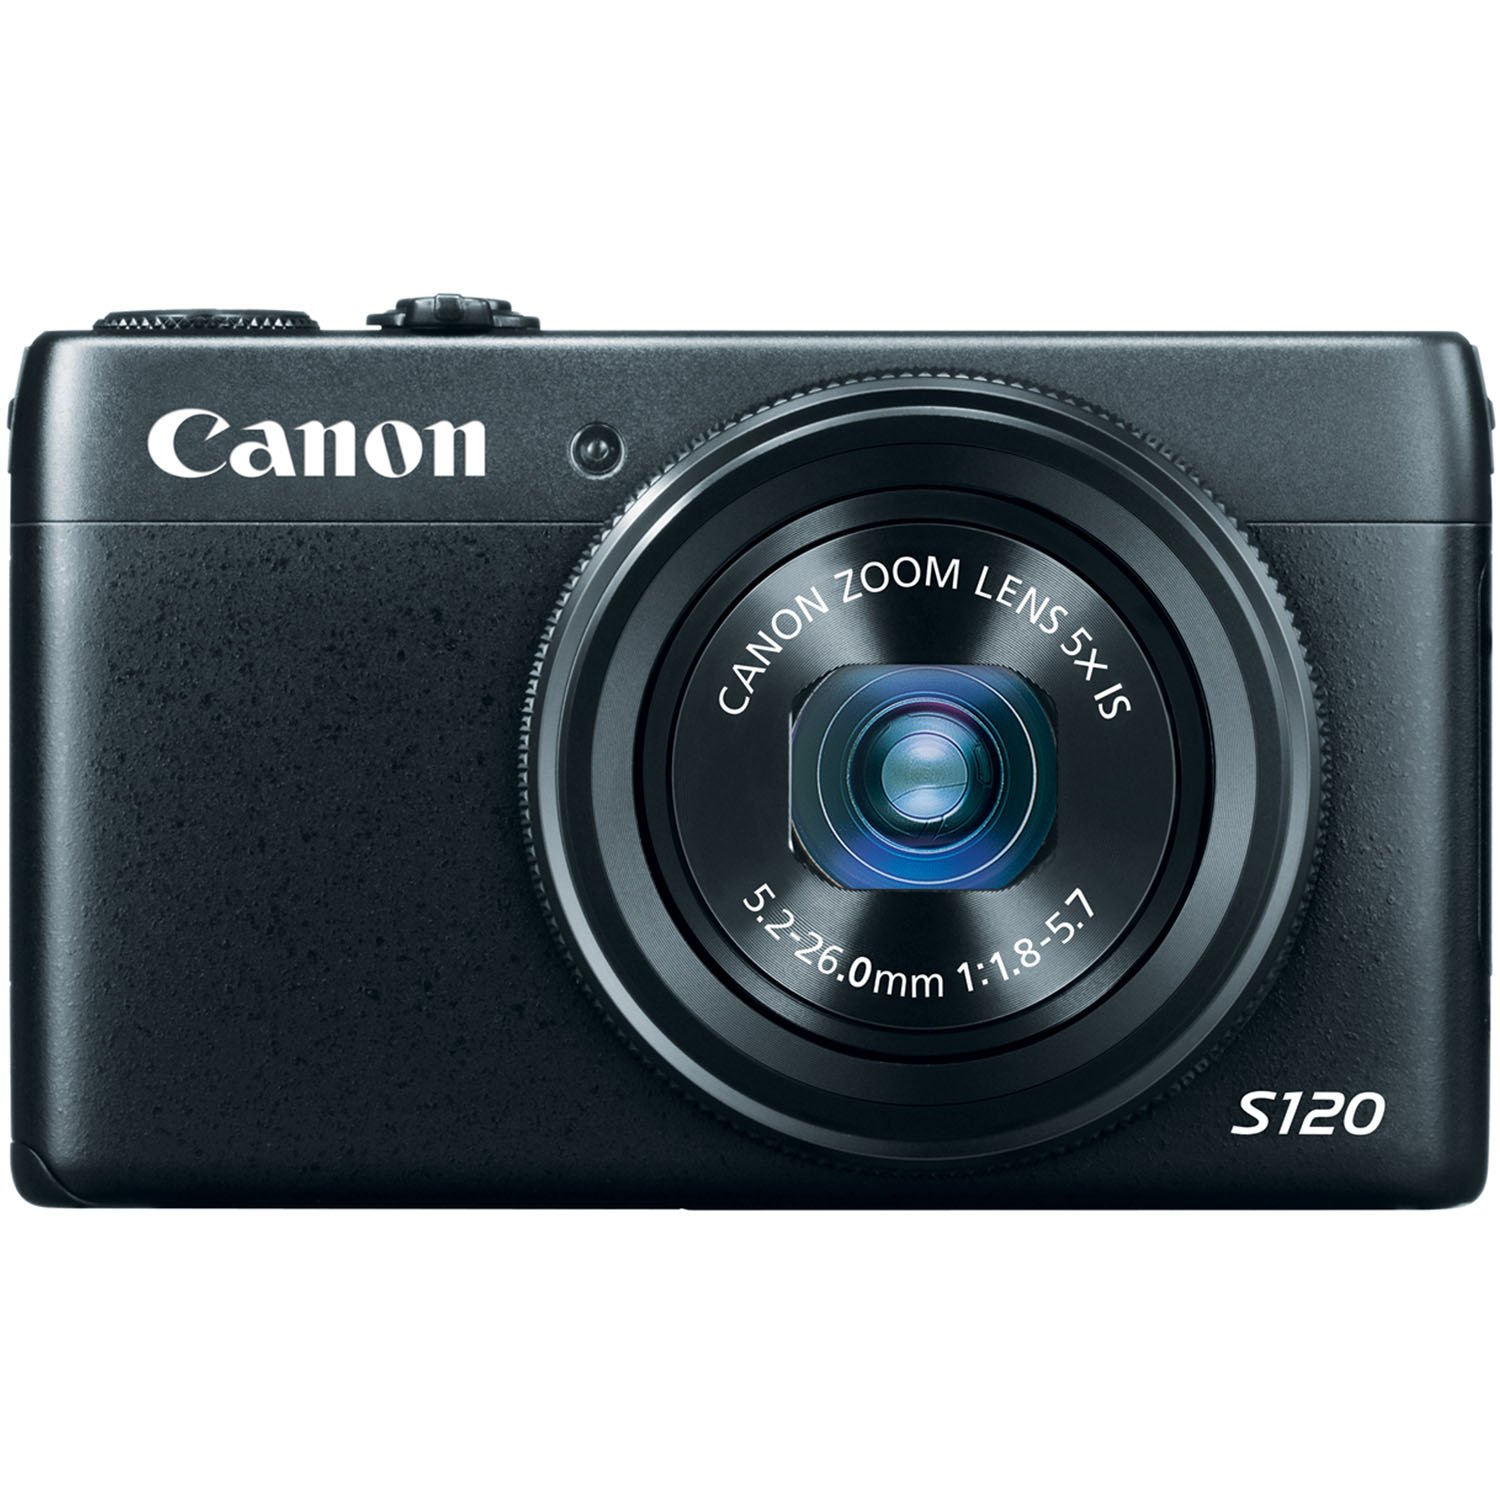 Canon PowerShot S120 12.1 MP CMOS Digital Camera with 5x Optical Zoom and 1080p Full-HD Video Wi-Fi Enabled by Canon